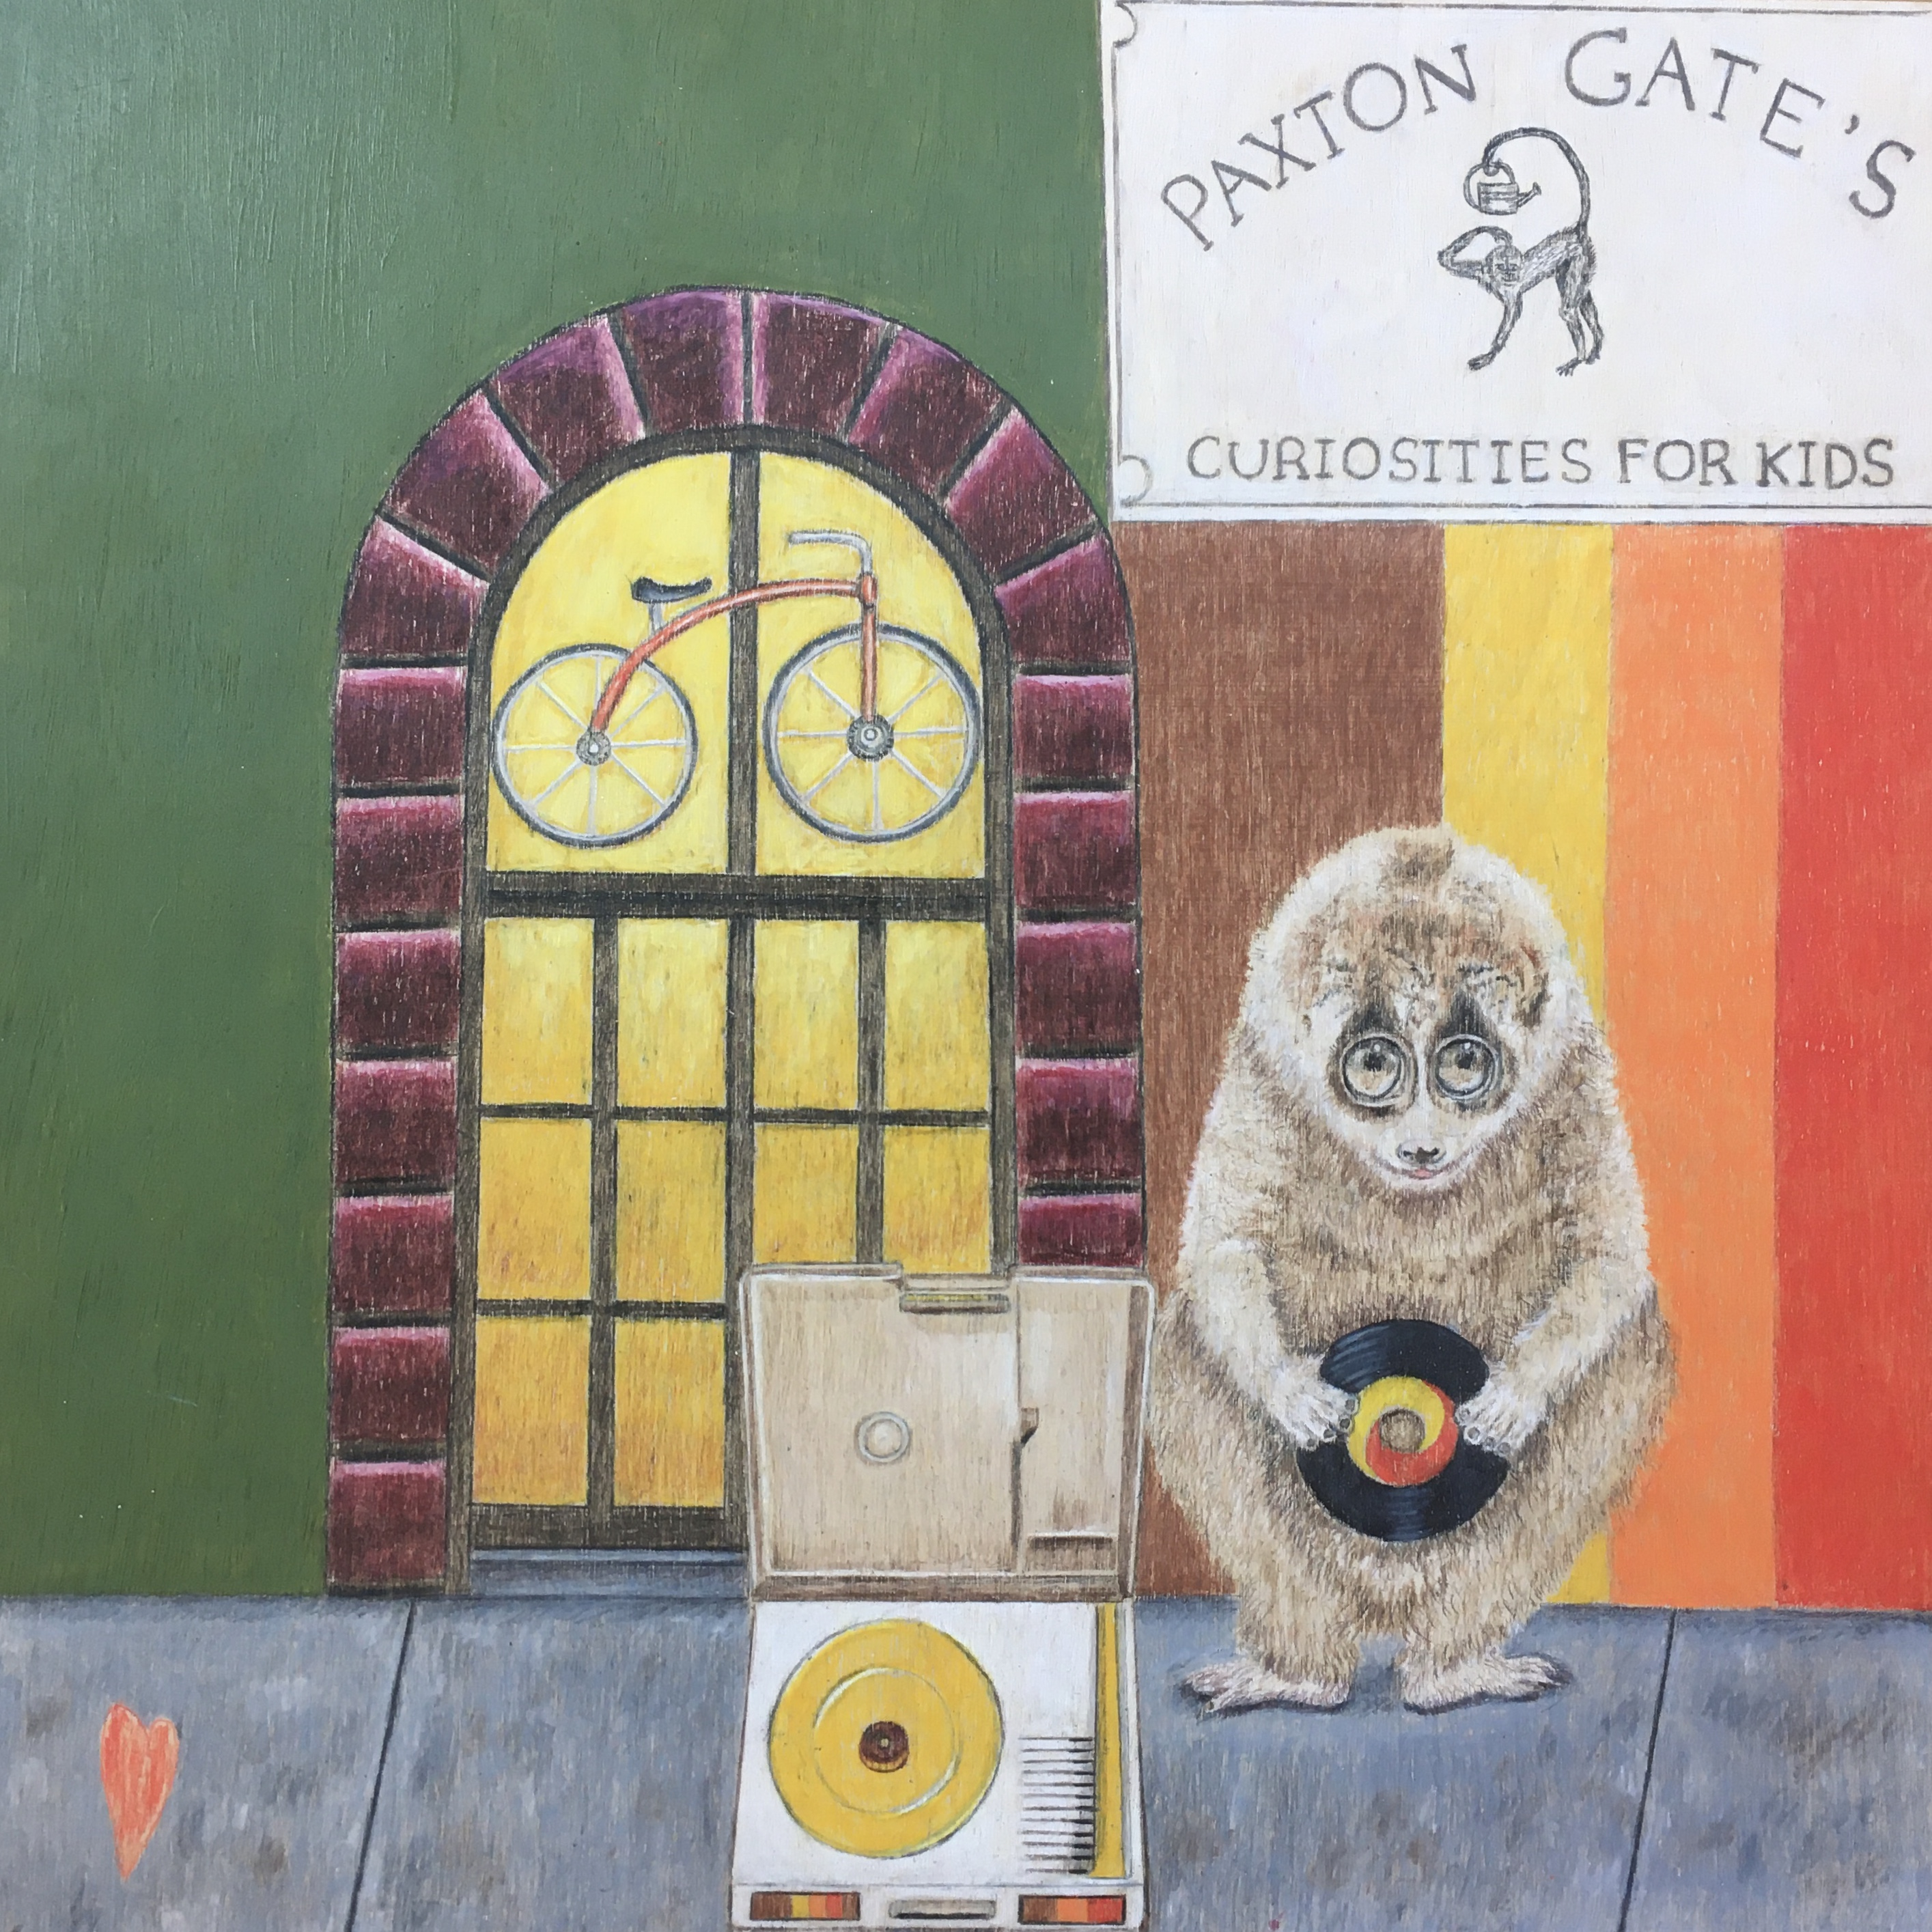 Curious Penny features the beloved and long lost children's toy and science store, Paxton Gate's Curiosities for Kids. This piece includes the endangered Slow Loris from Southeast Asia.